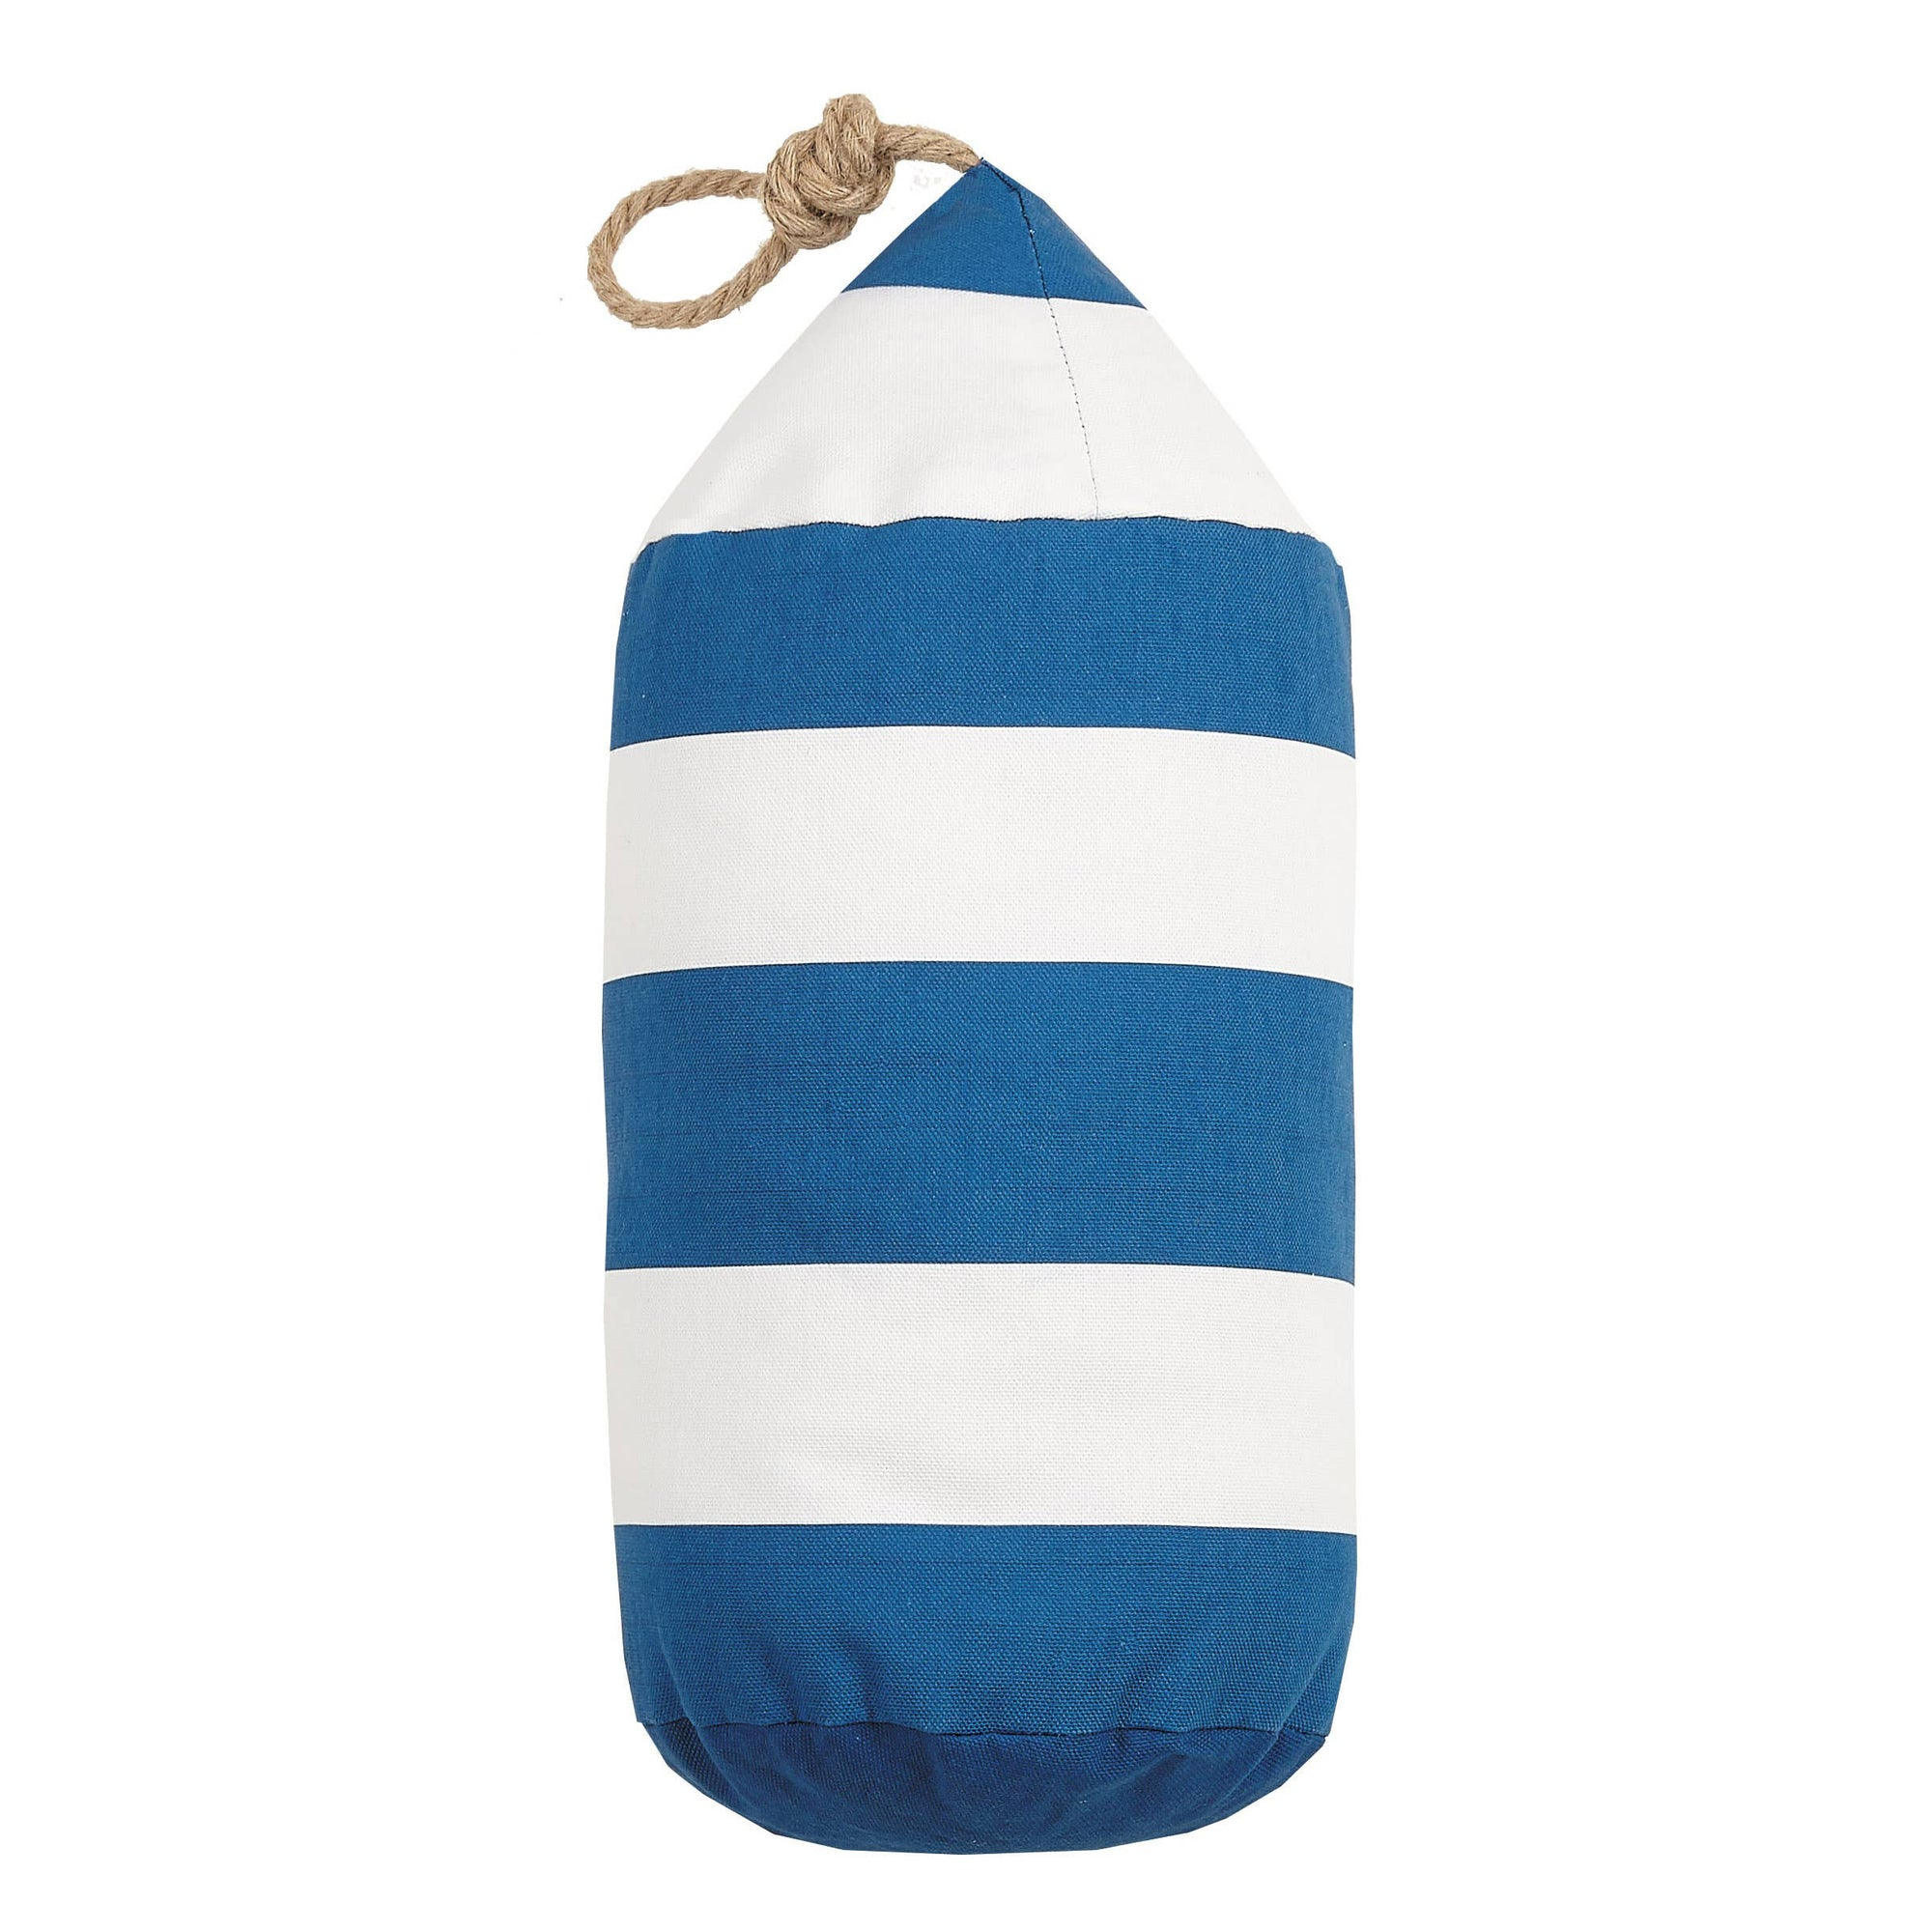 Buoy Shaped Pillow Navy